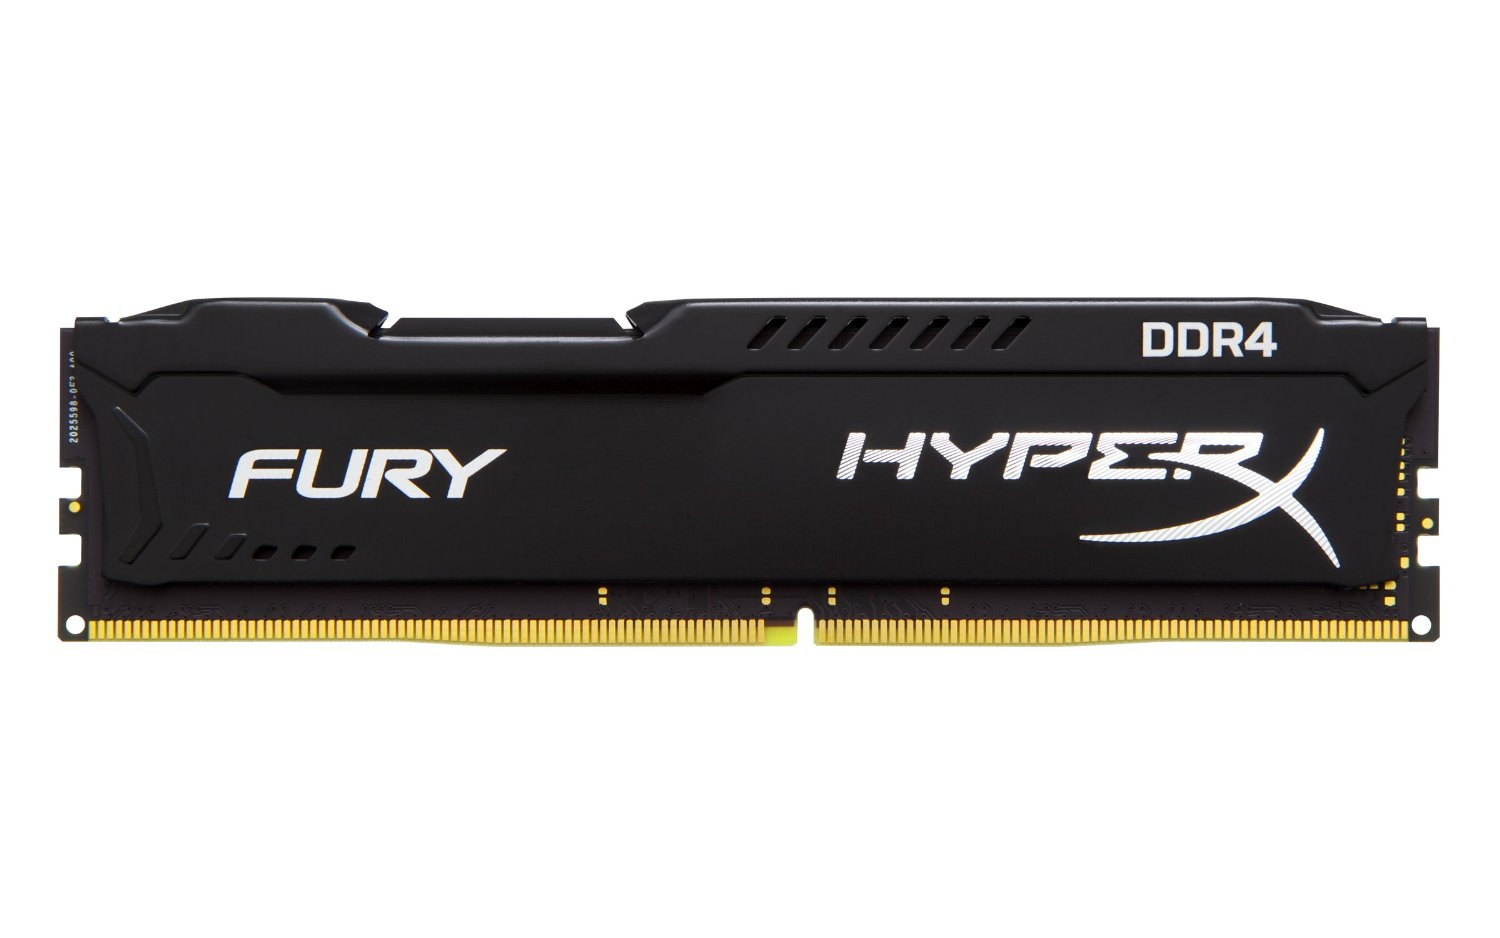 رم کامپيوتر کينگستون مدل HyperX Fury DDR4 2400MHz CL15 ظرفيت 4 گيگابايت | Kingston HyperX Fury 4GB DDR4 2400MHz CL15 Single Channel RAM HX424C15FB4